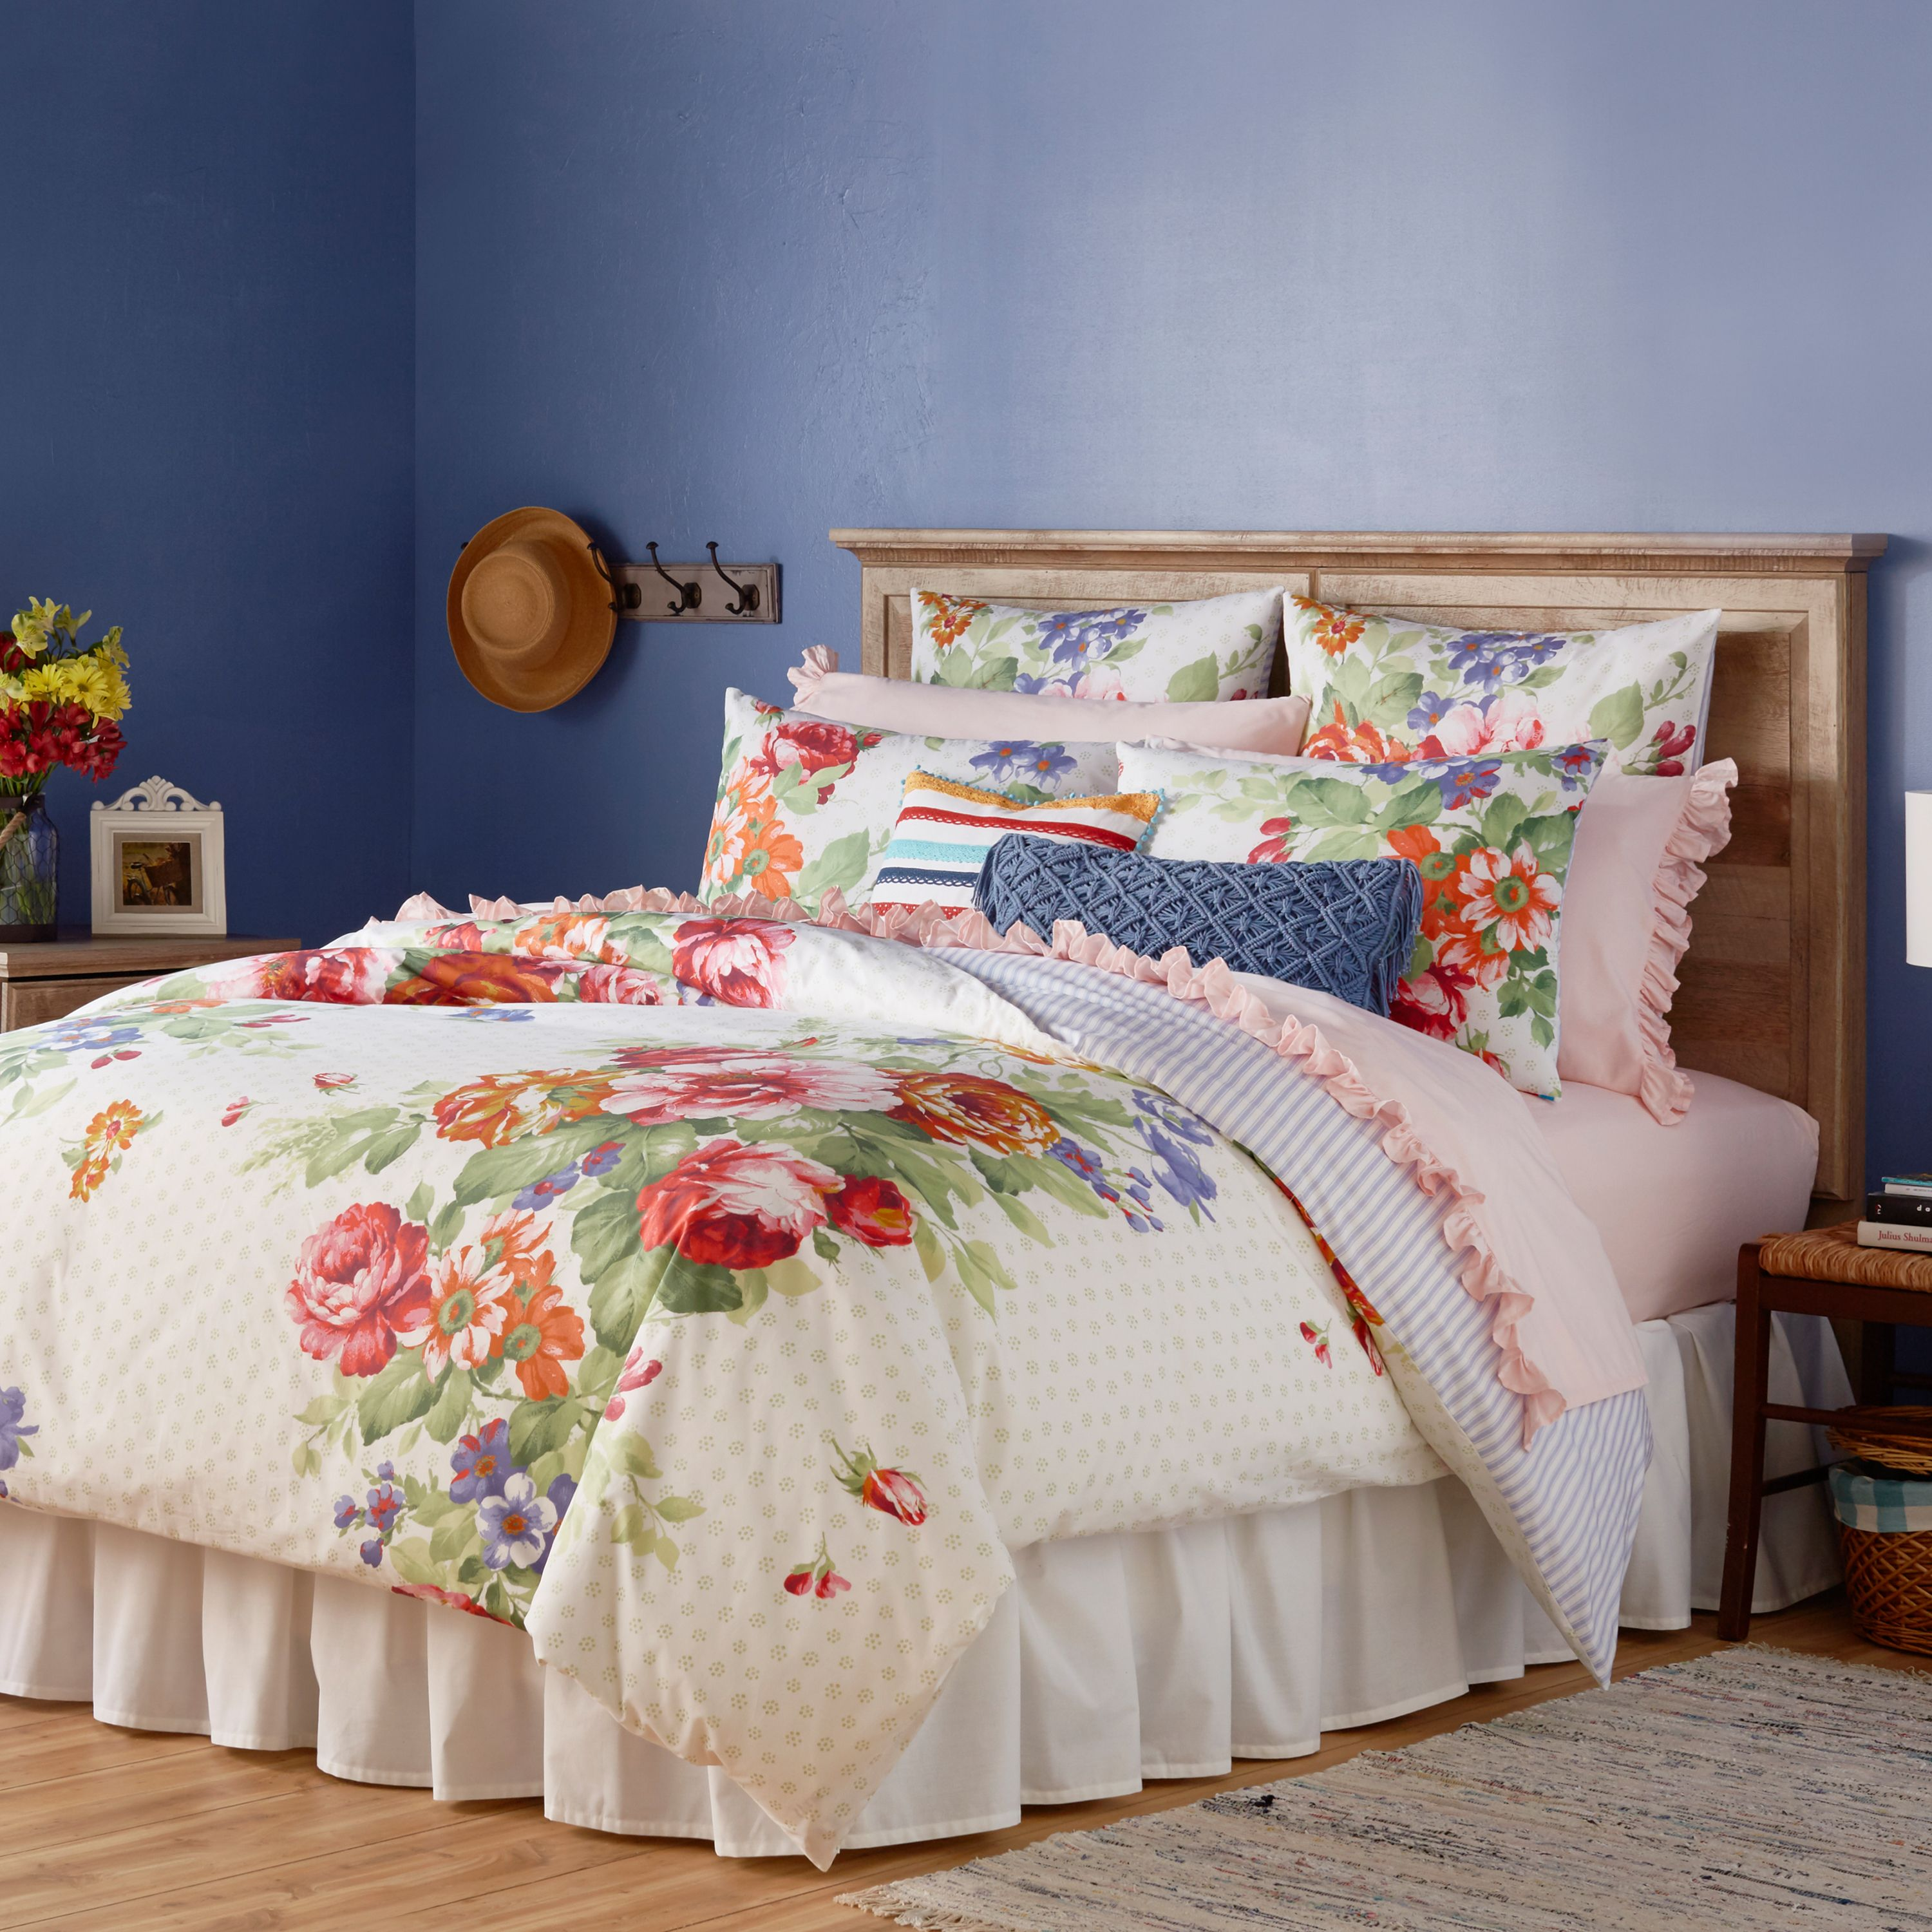 The Pioneer Woman Beautiful Bouquet Comforter, White